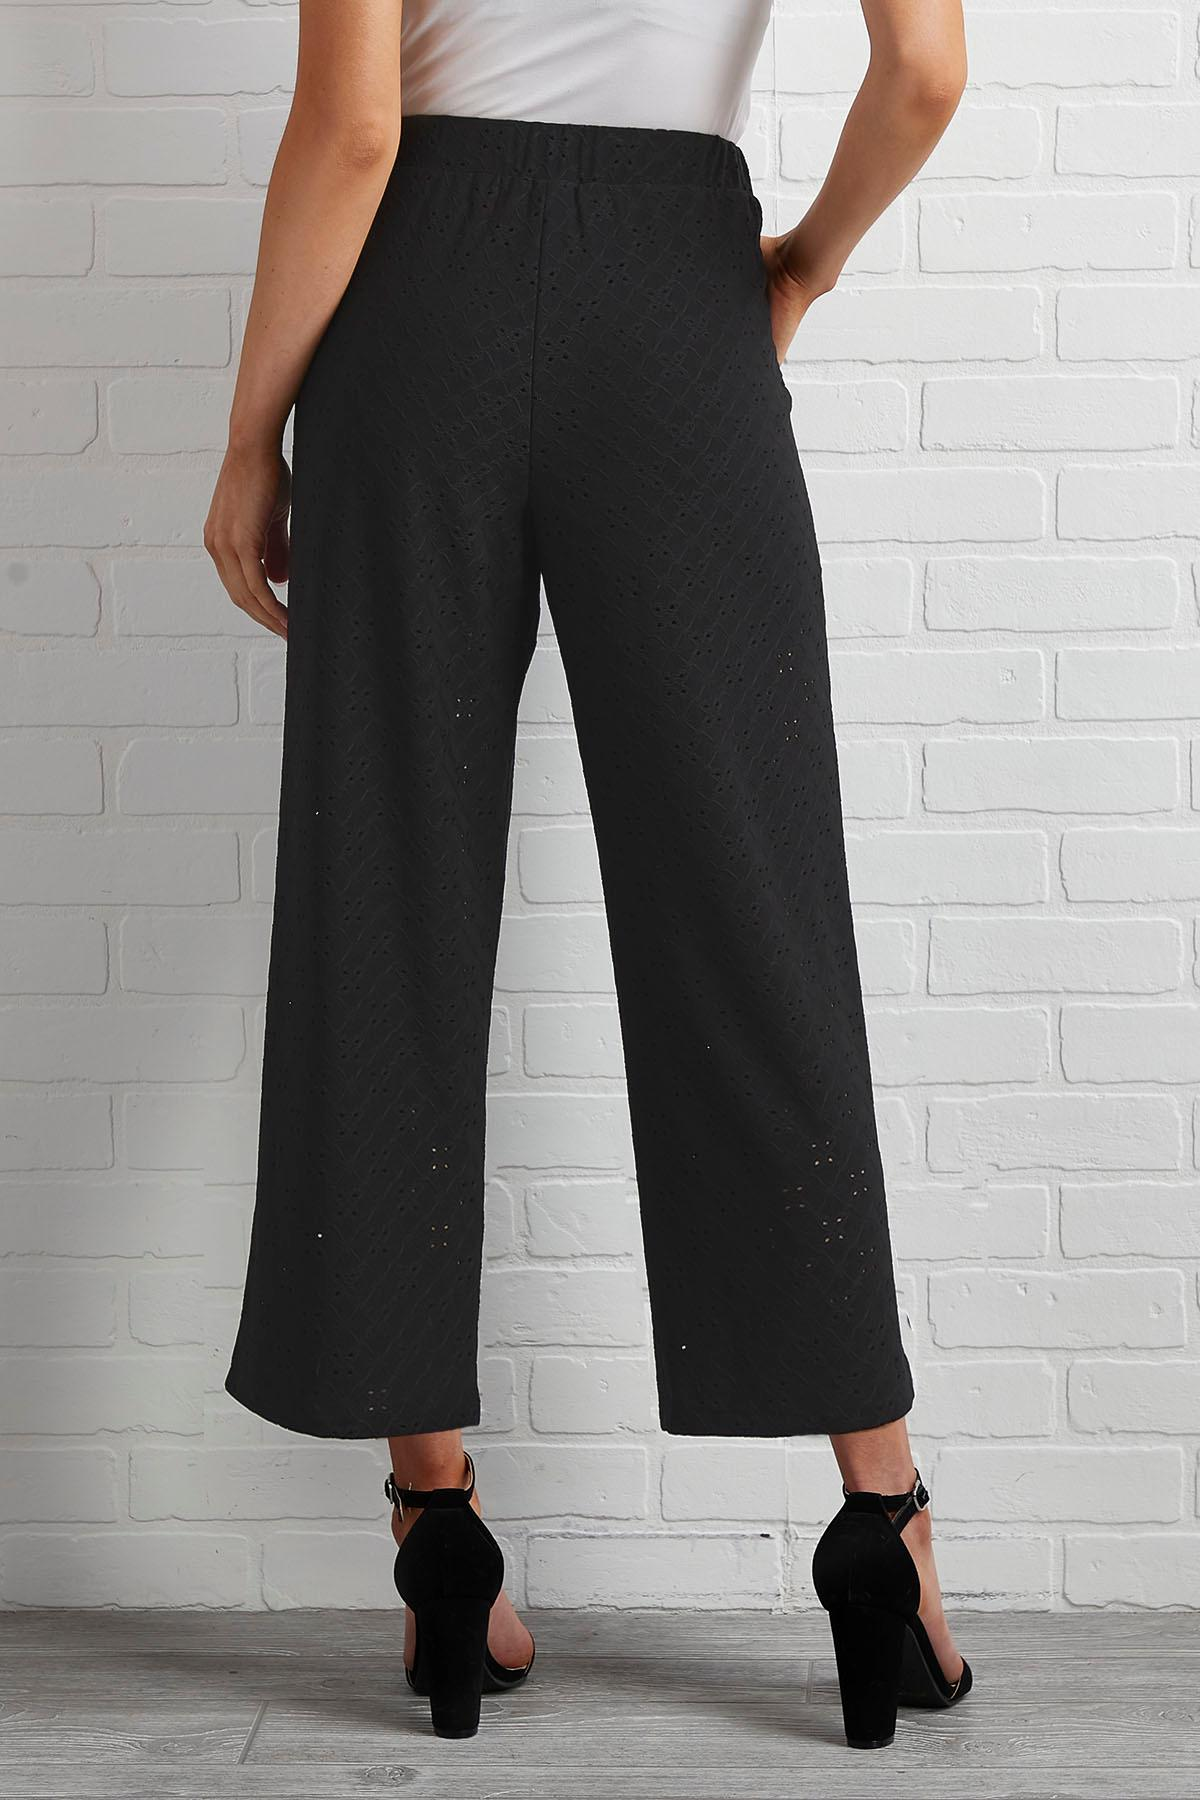 Pretty Little Things Cropped Pants